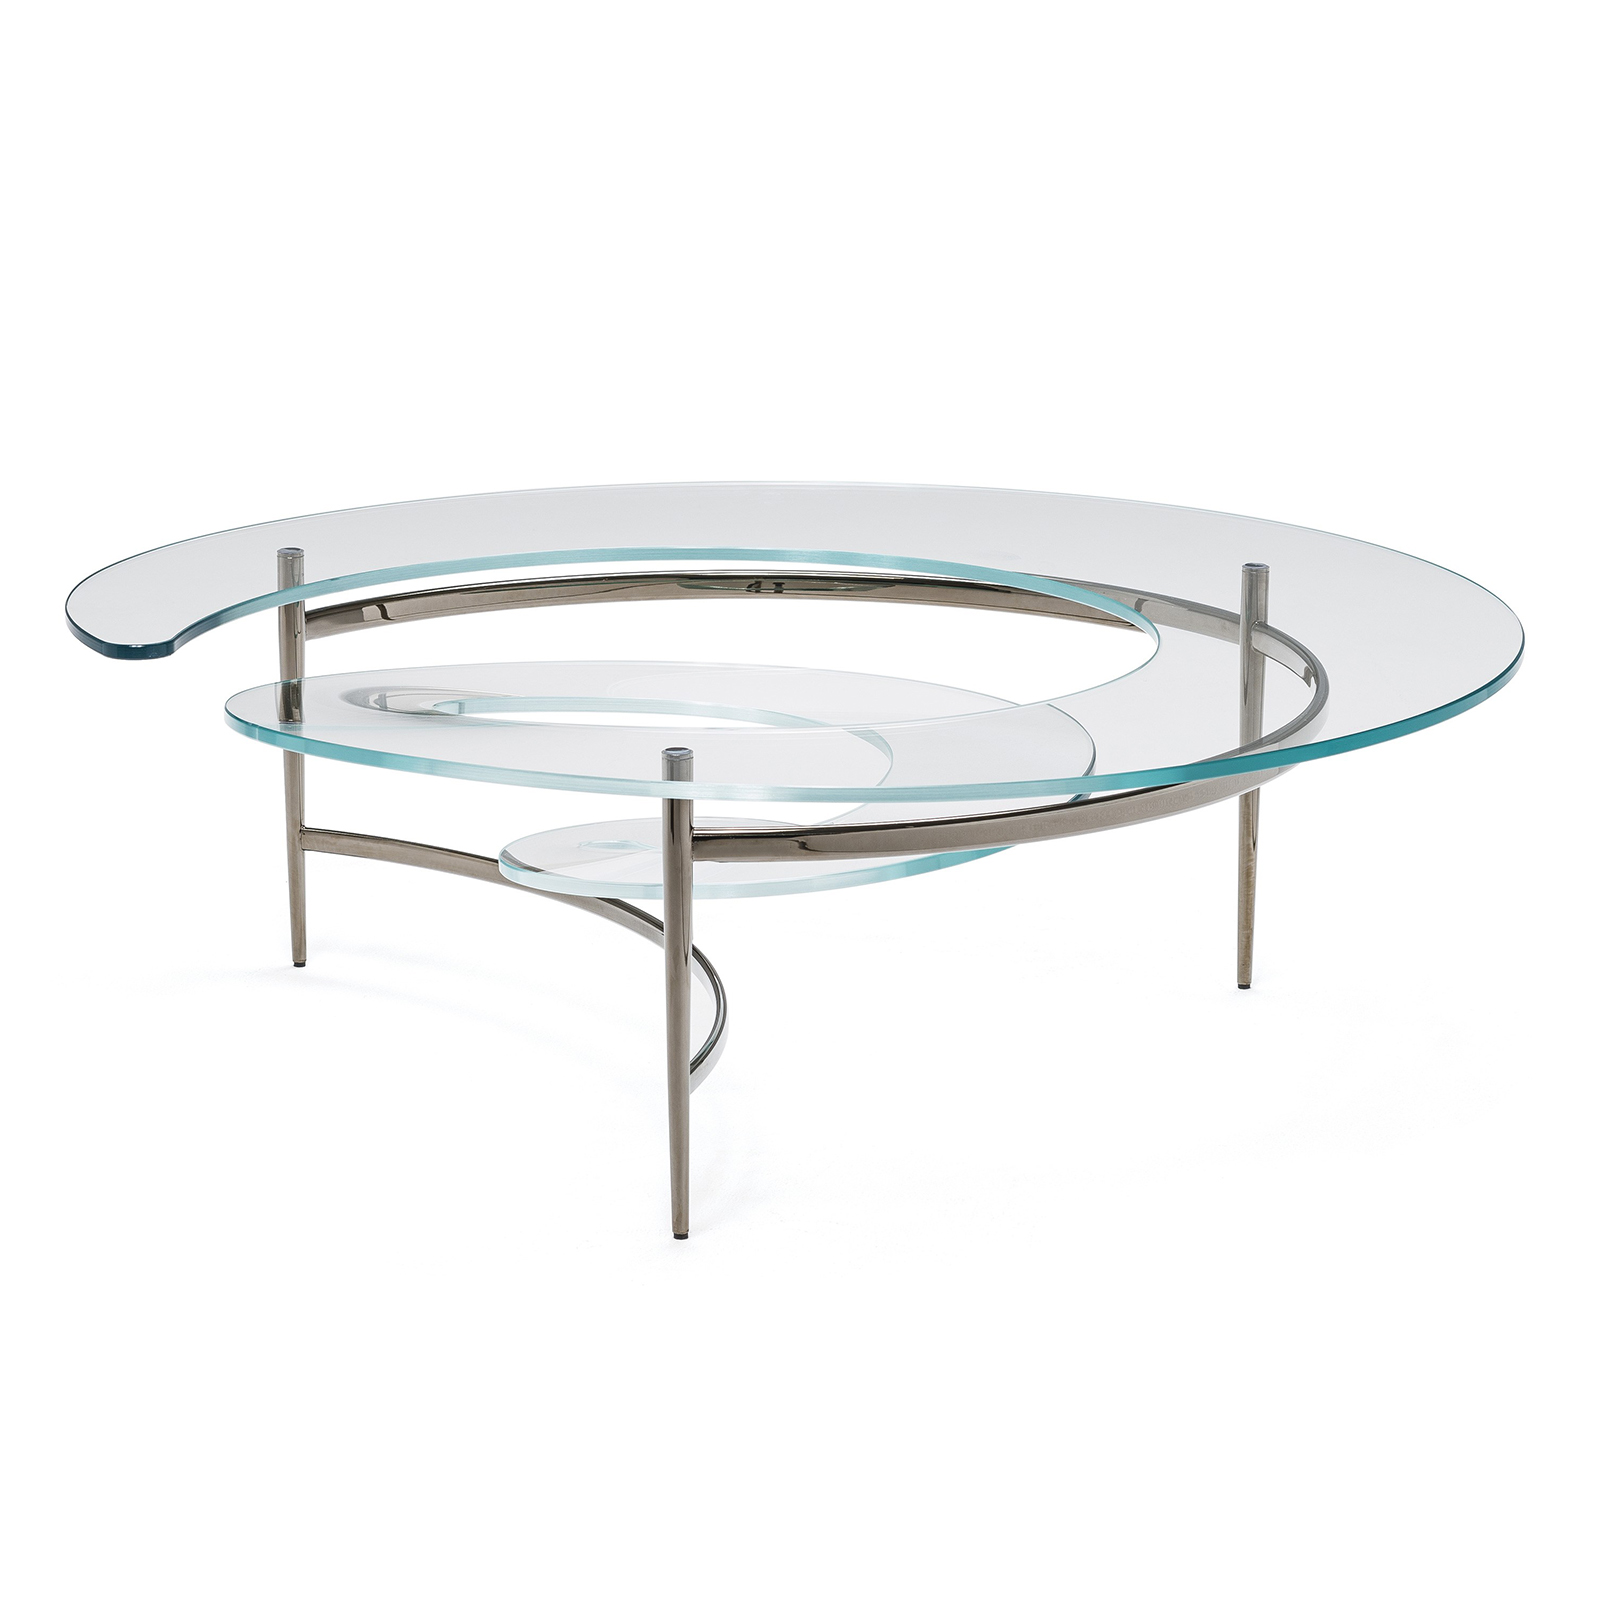 Table basse design en verre spirale mobilier de luxe for Table basse en verre but